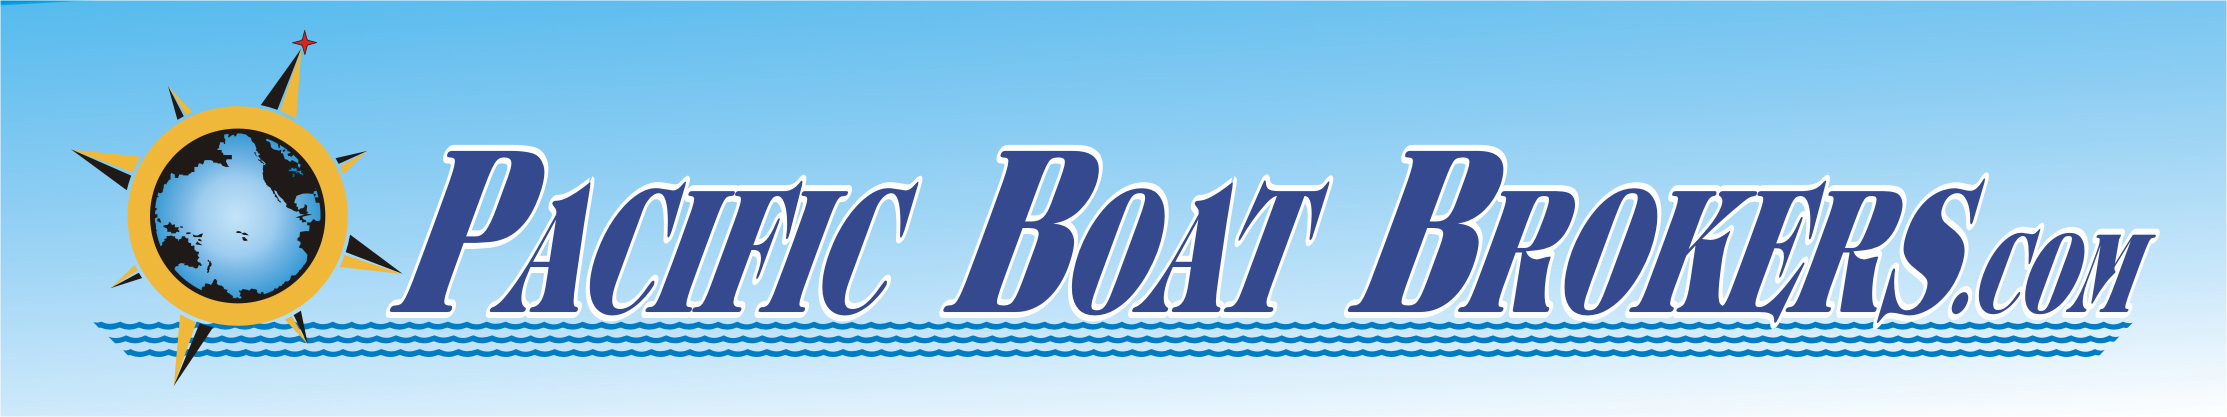 Pacific Boat Brokers Inc.